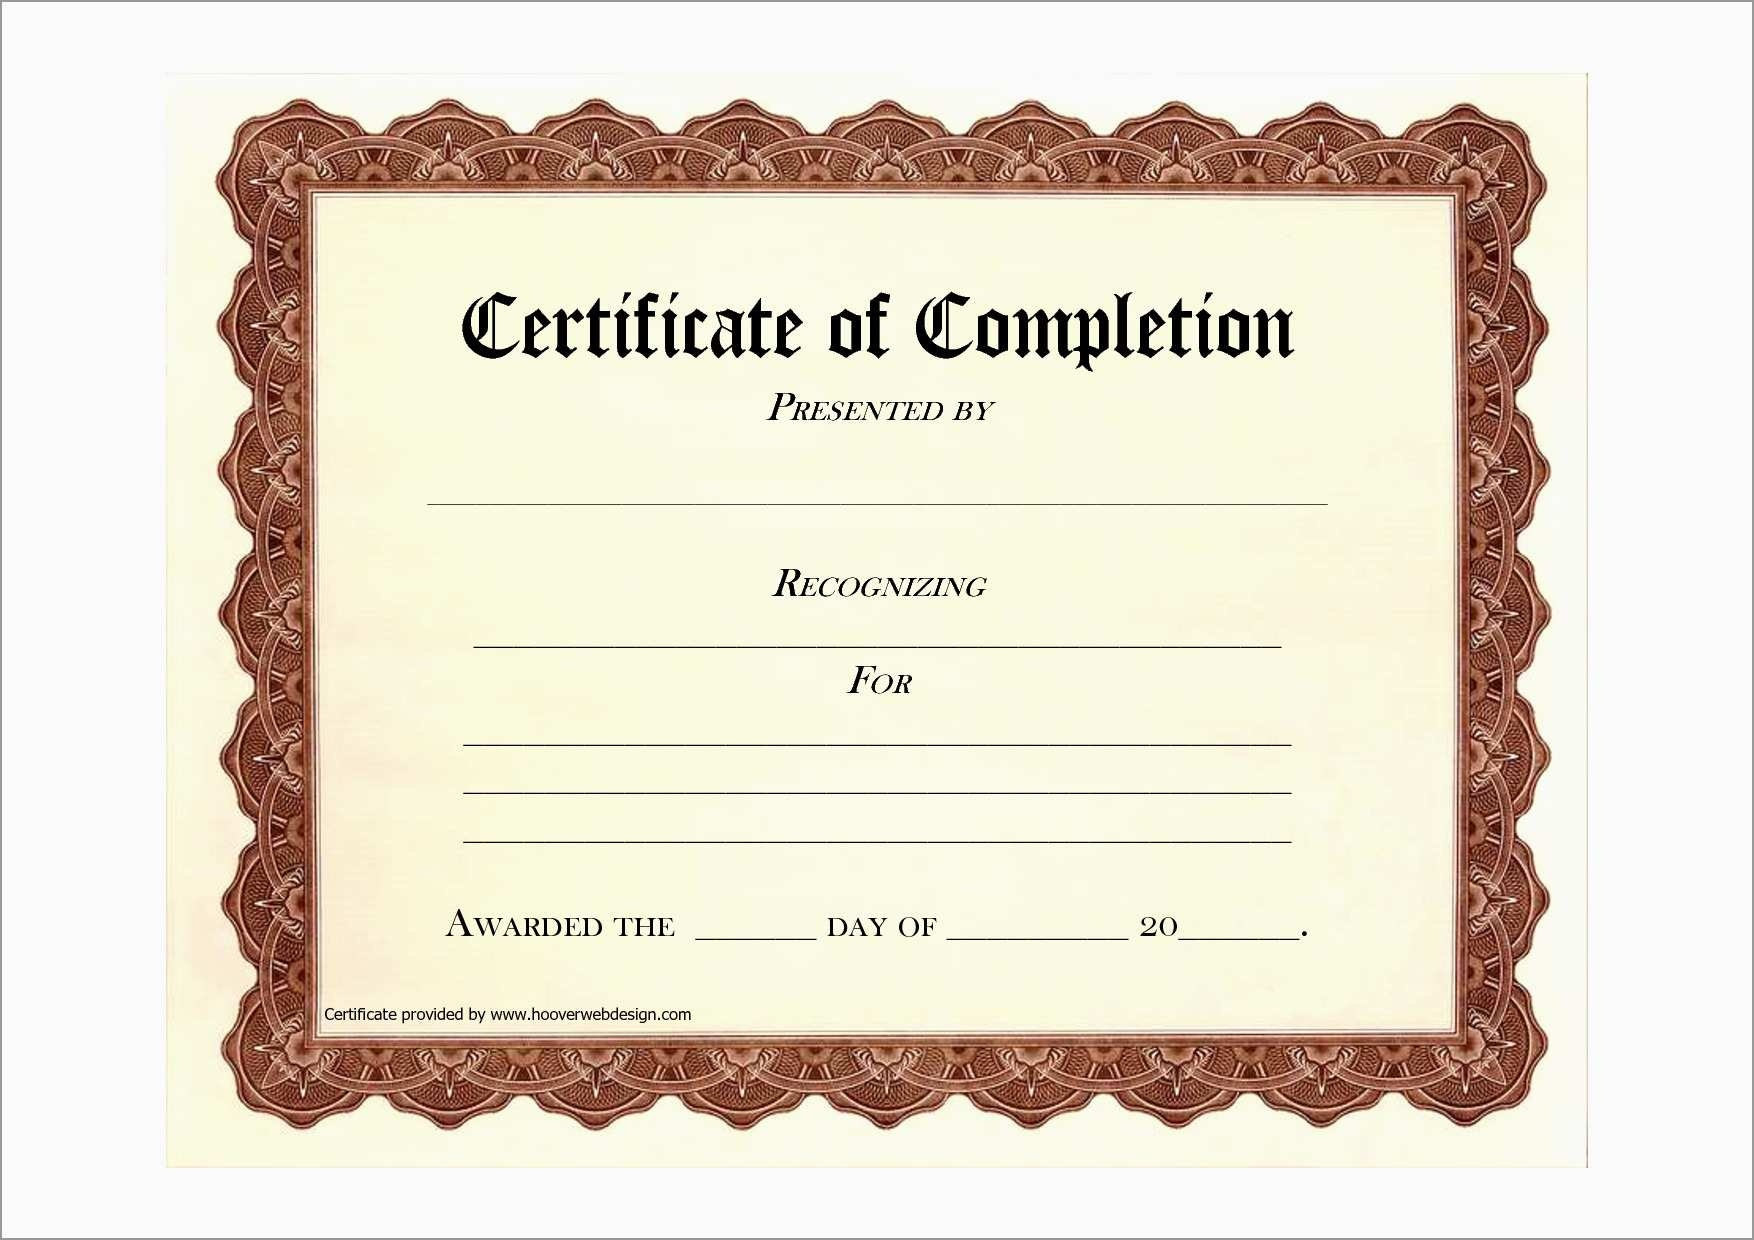 Unique Certificate Of Completion Template Free Download | Best Of - Certificate Of Completion Template Free Printable